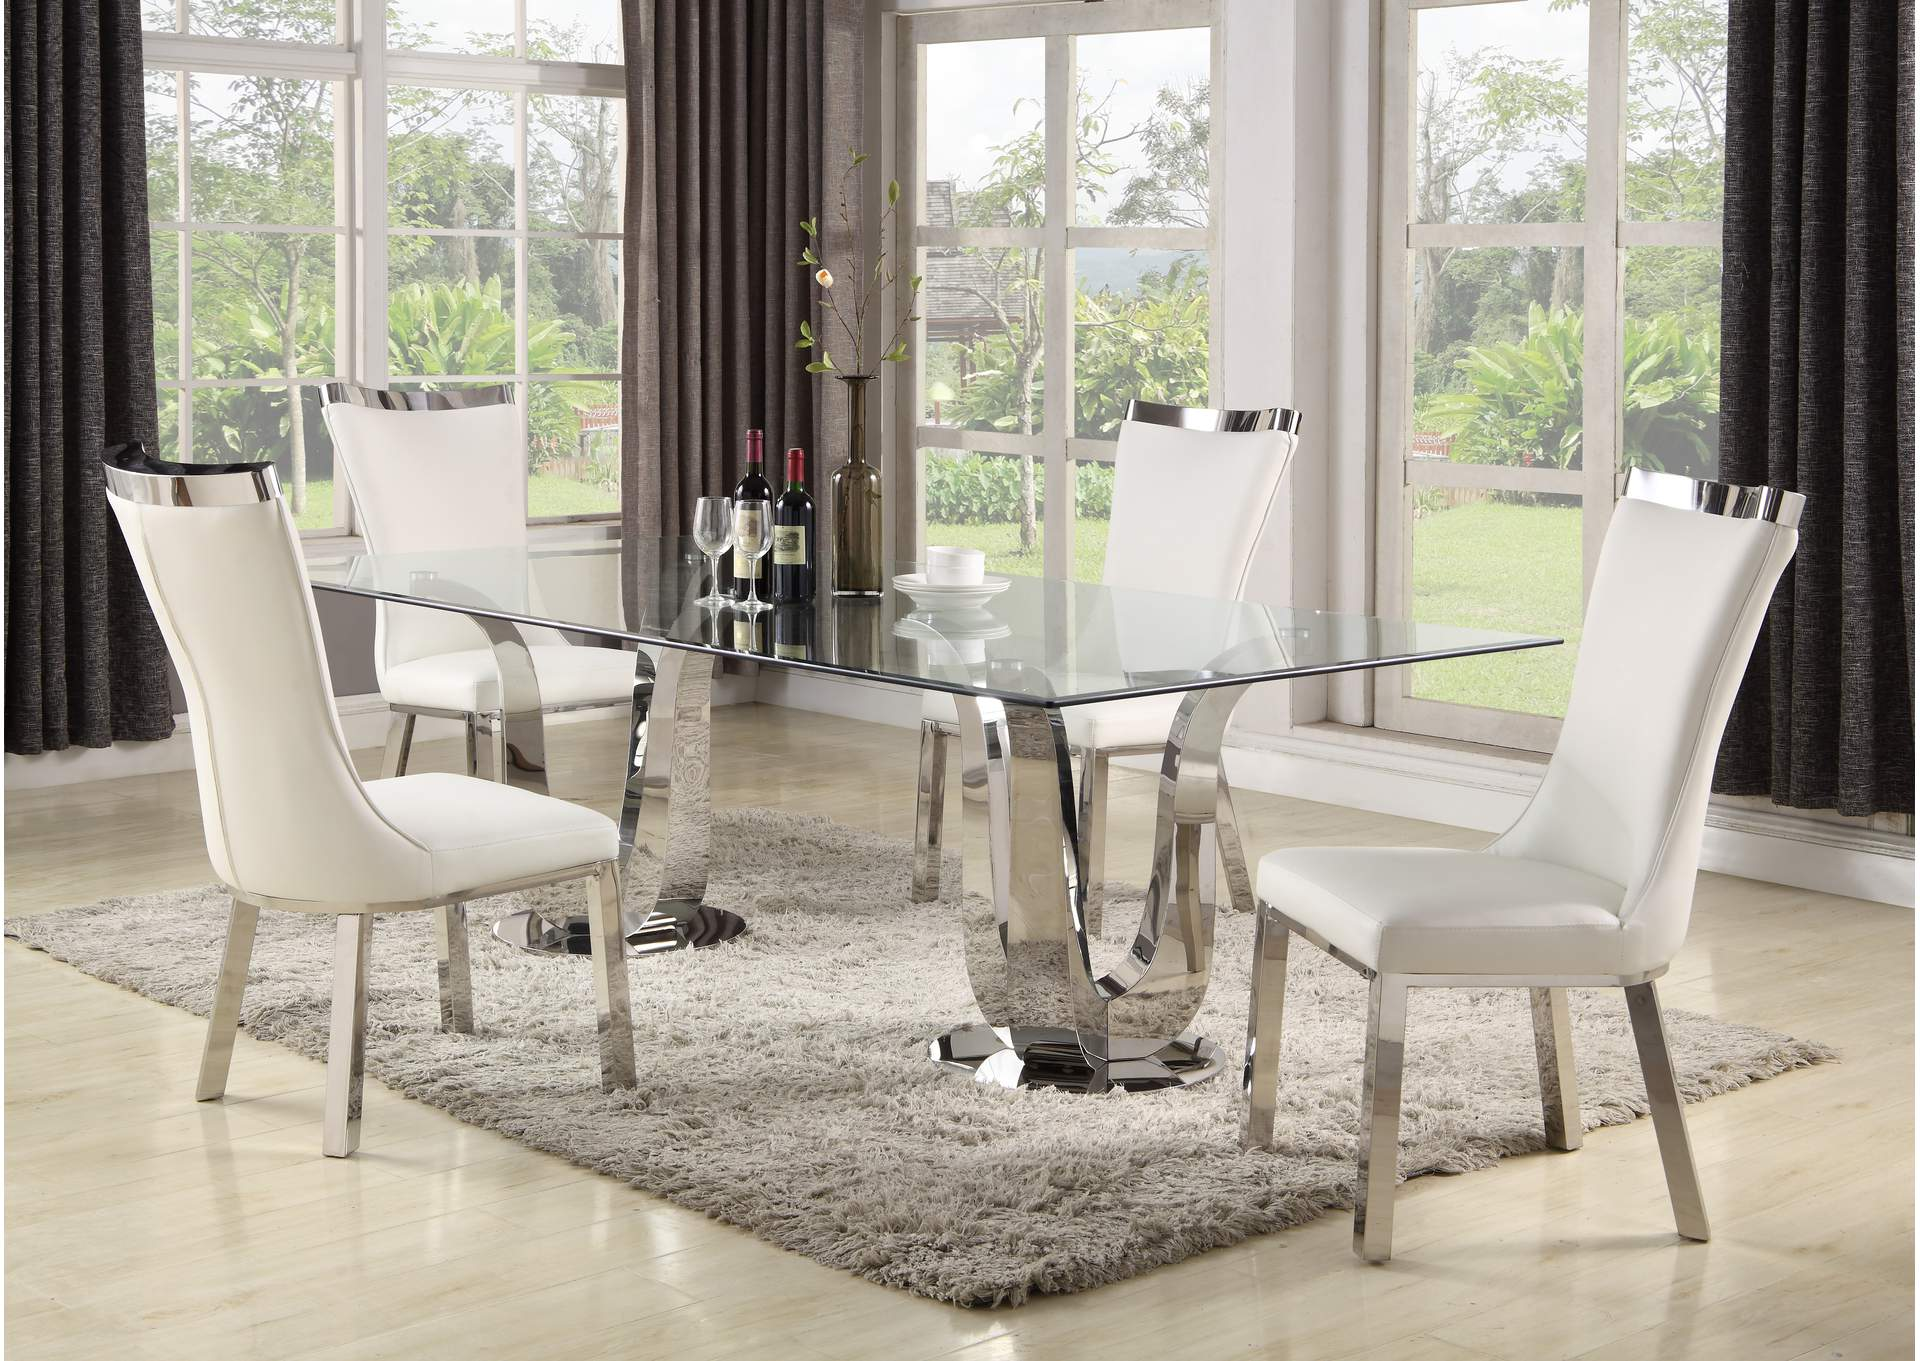 Adelle White Dining Set w/ Rectangular Glass Table & 4 White Chairs,Chintaly Imports